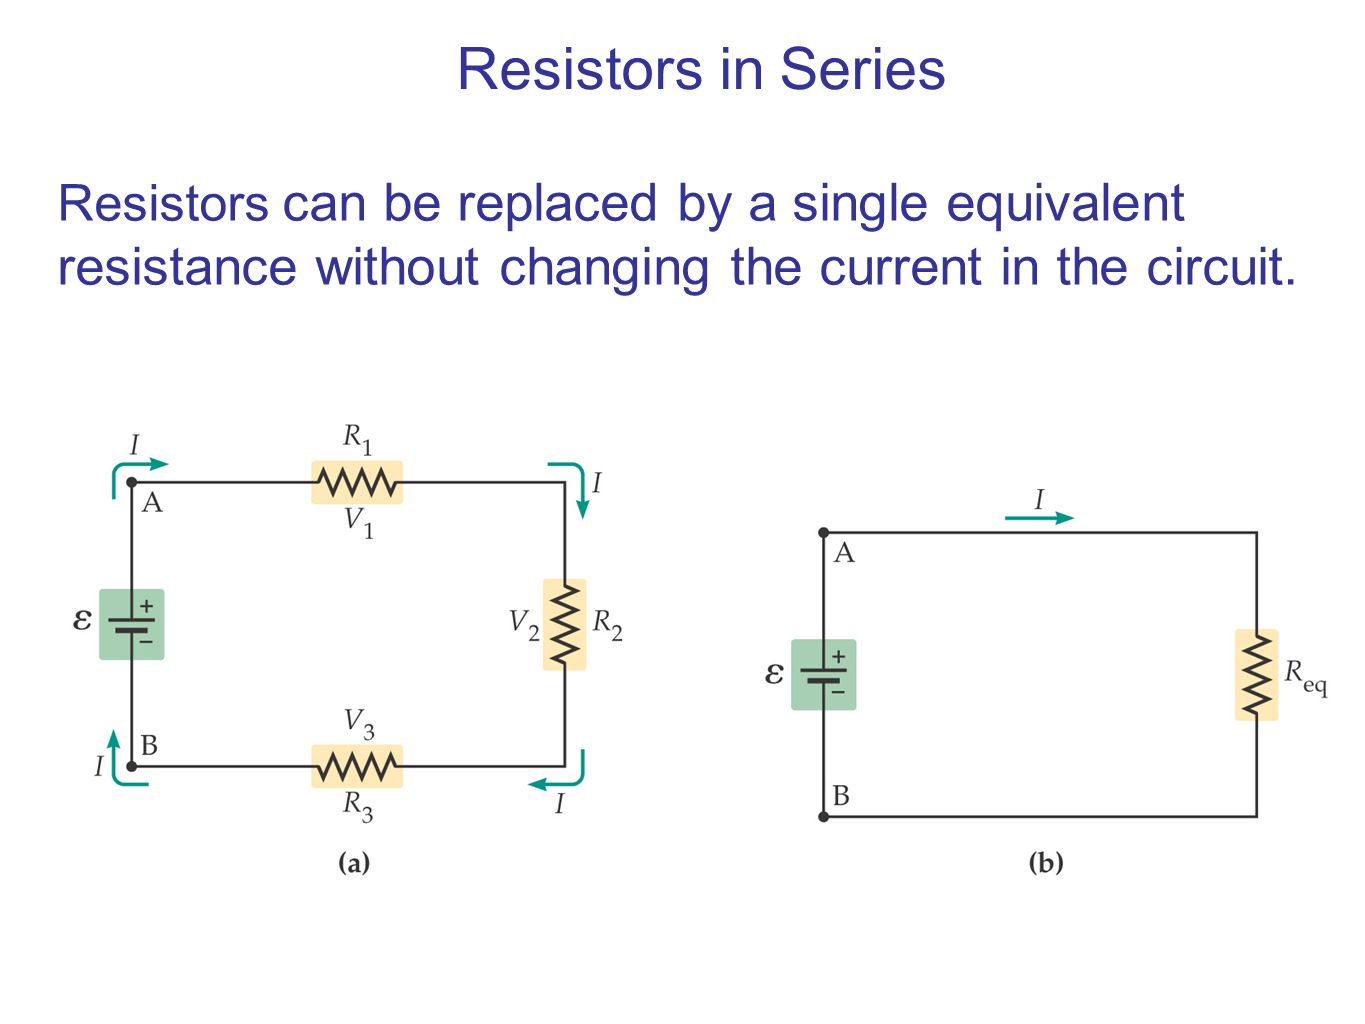 Series And Parallel Circuits Ppt Video Online Download Equivalent To Having One 4 Resistor In The Circuit 8 Resistors Can Be Replaced By A Single Resistance Without Changing Current